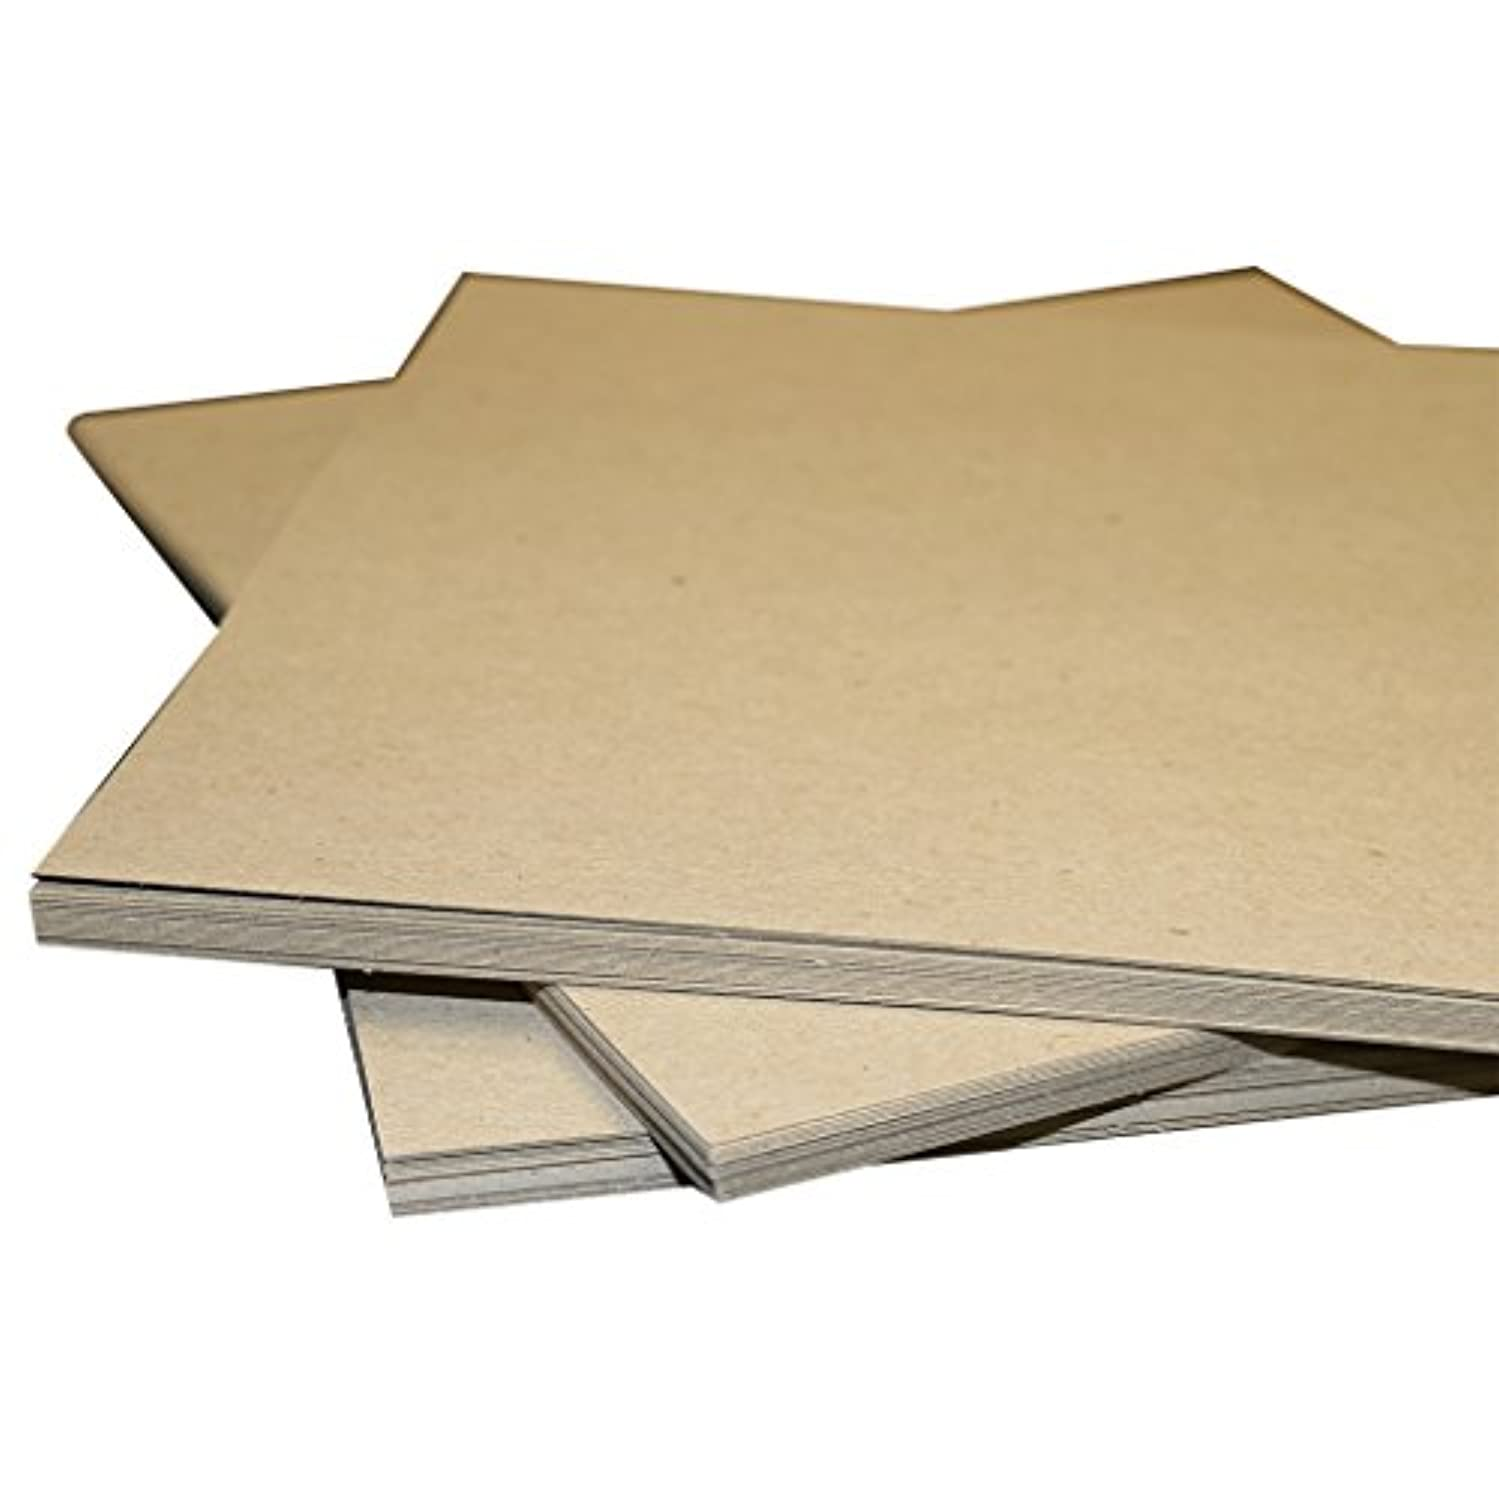 8.5x11 22PT Chipboard 200 Pack | .022 Thickness | Brown Scrapbooking Brown Kraft Sheets | Pad Inserts for mailing and Shipping Protection and Many Other uses | Secure Seal by Shipping Depot